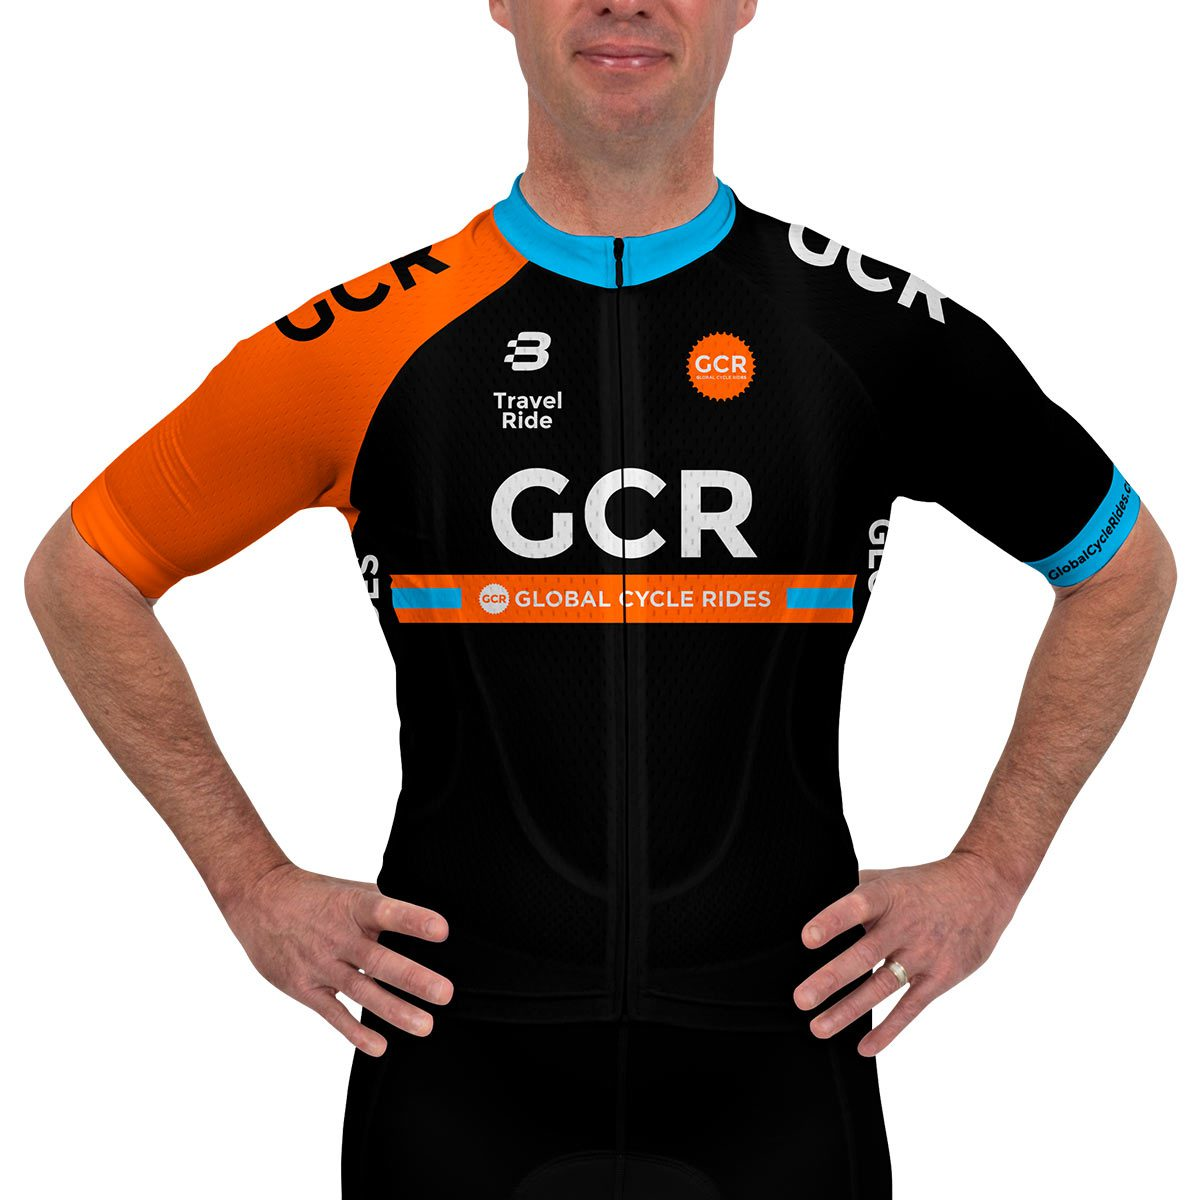 aa8b8353bec Global Cycle Rides - Mens Pro Kit - VL64679 - Jersey - Front